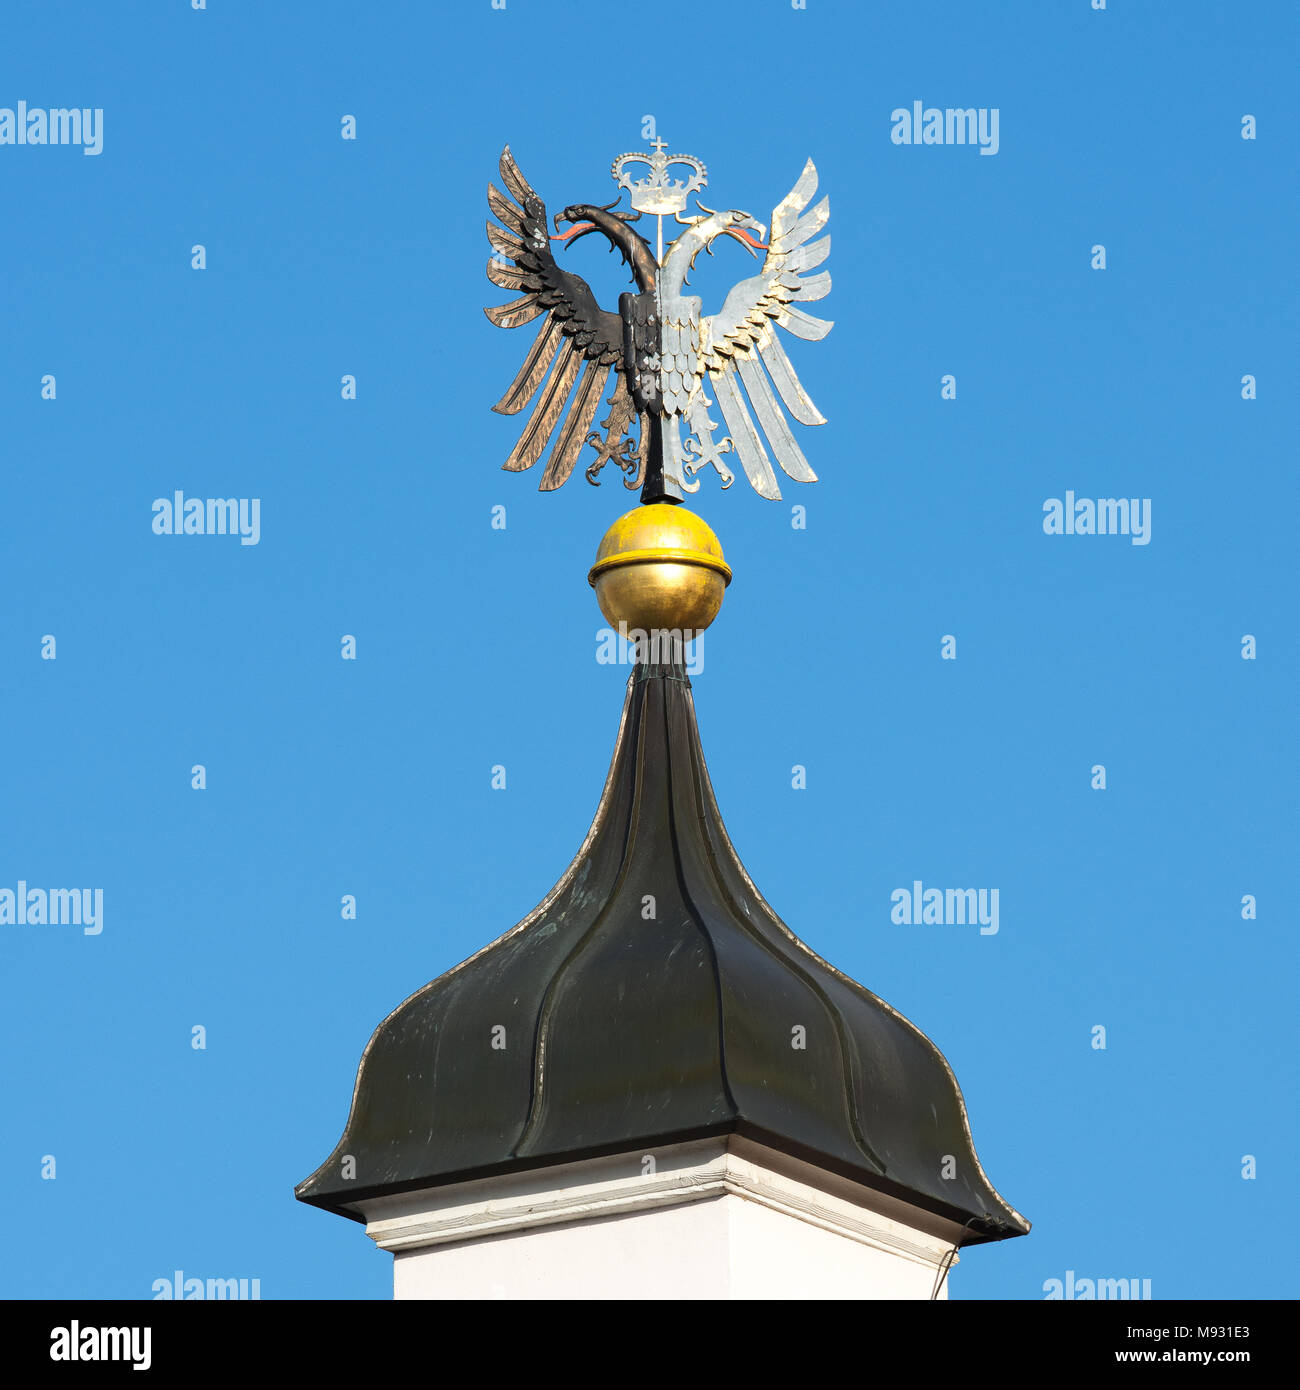 Double eagle on the spire of the town hall in Kempten Stock Photo